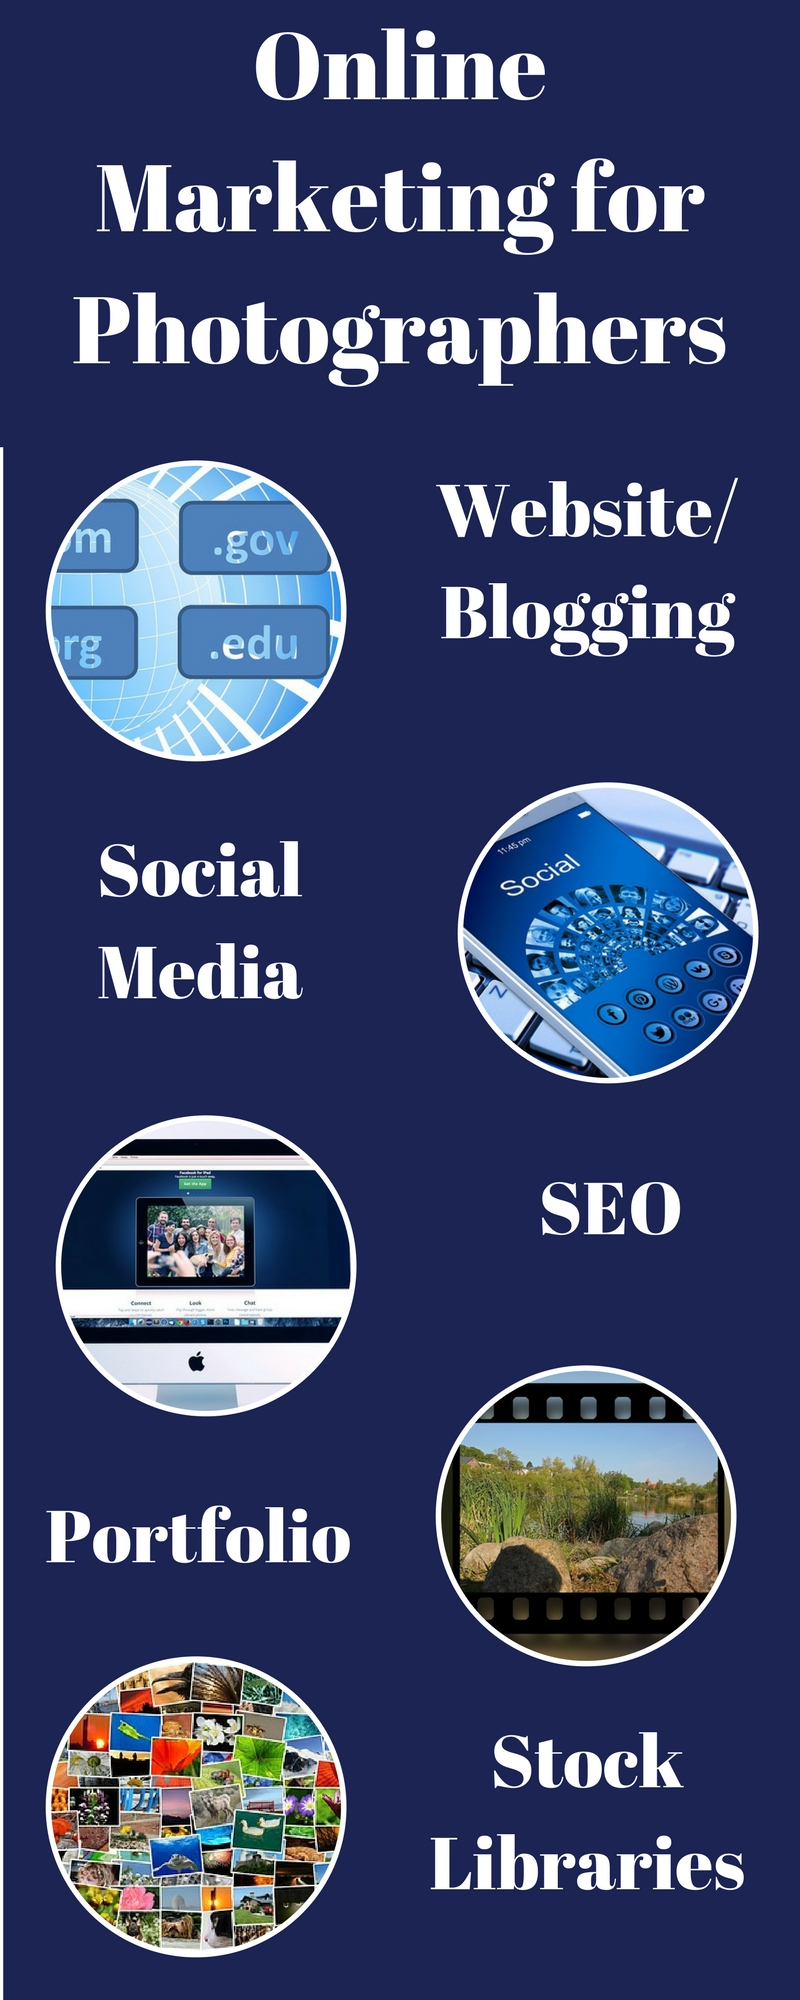 online marketing for photographers infographic